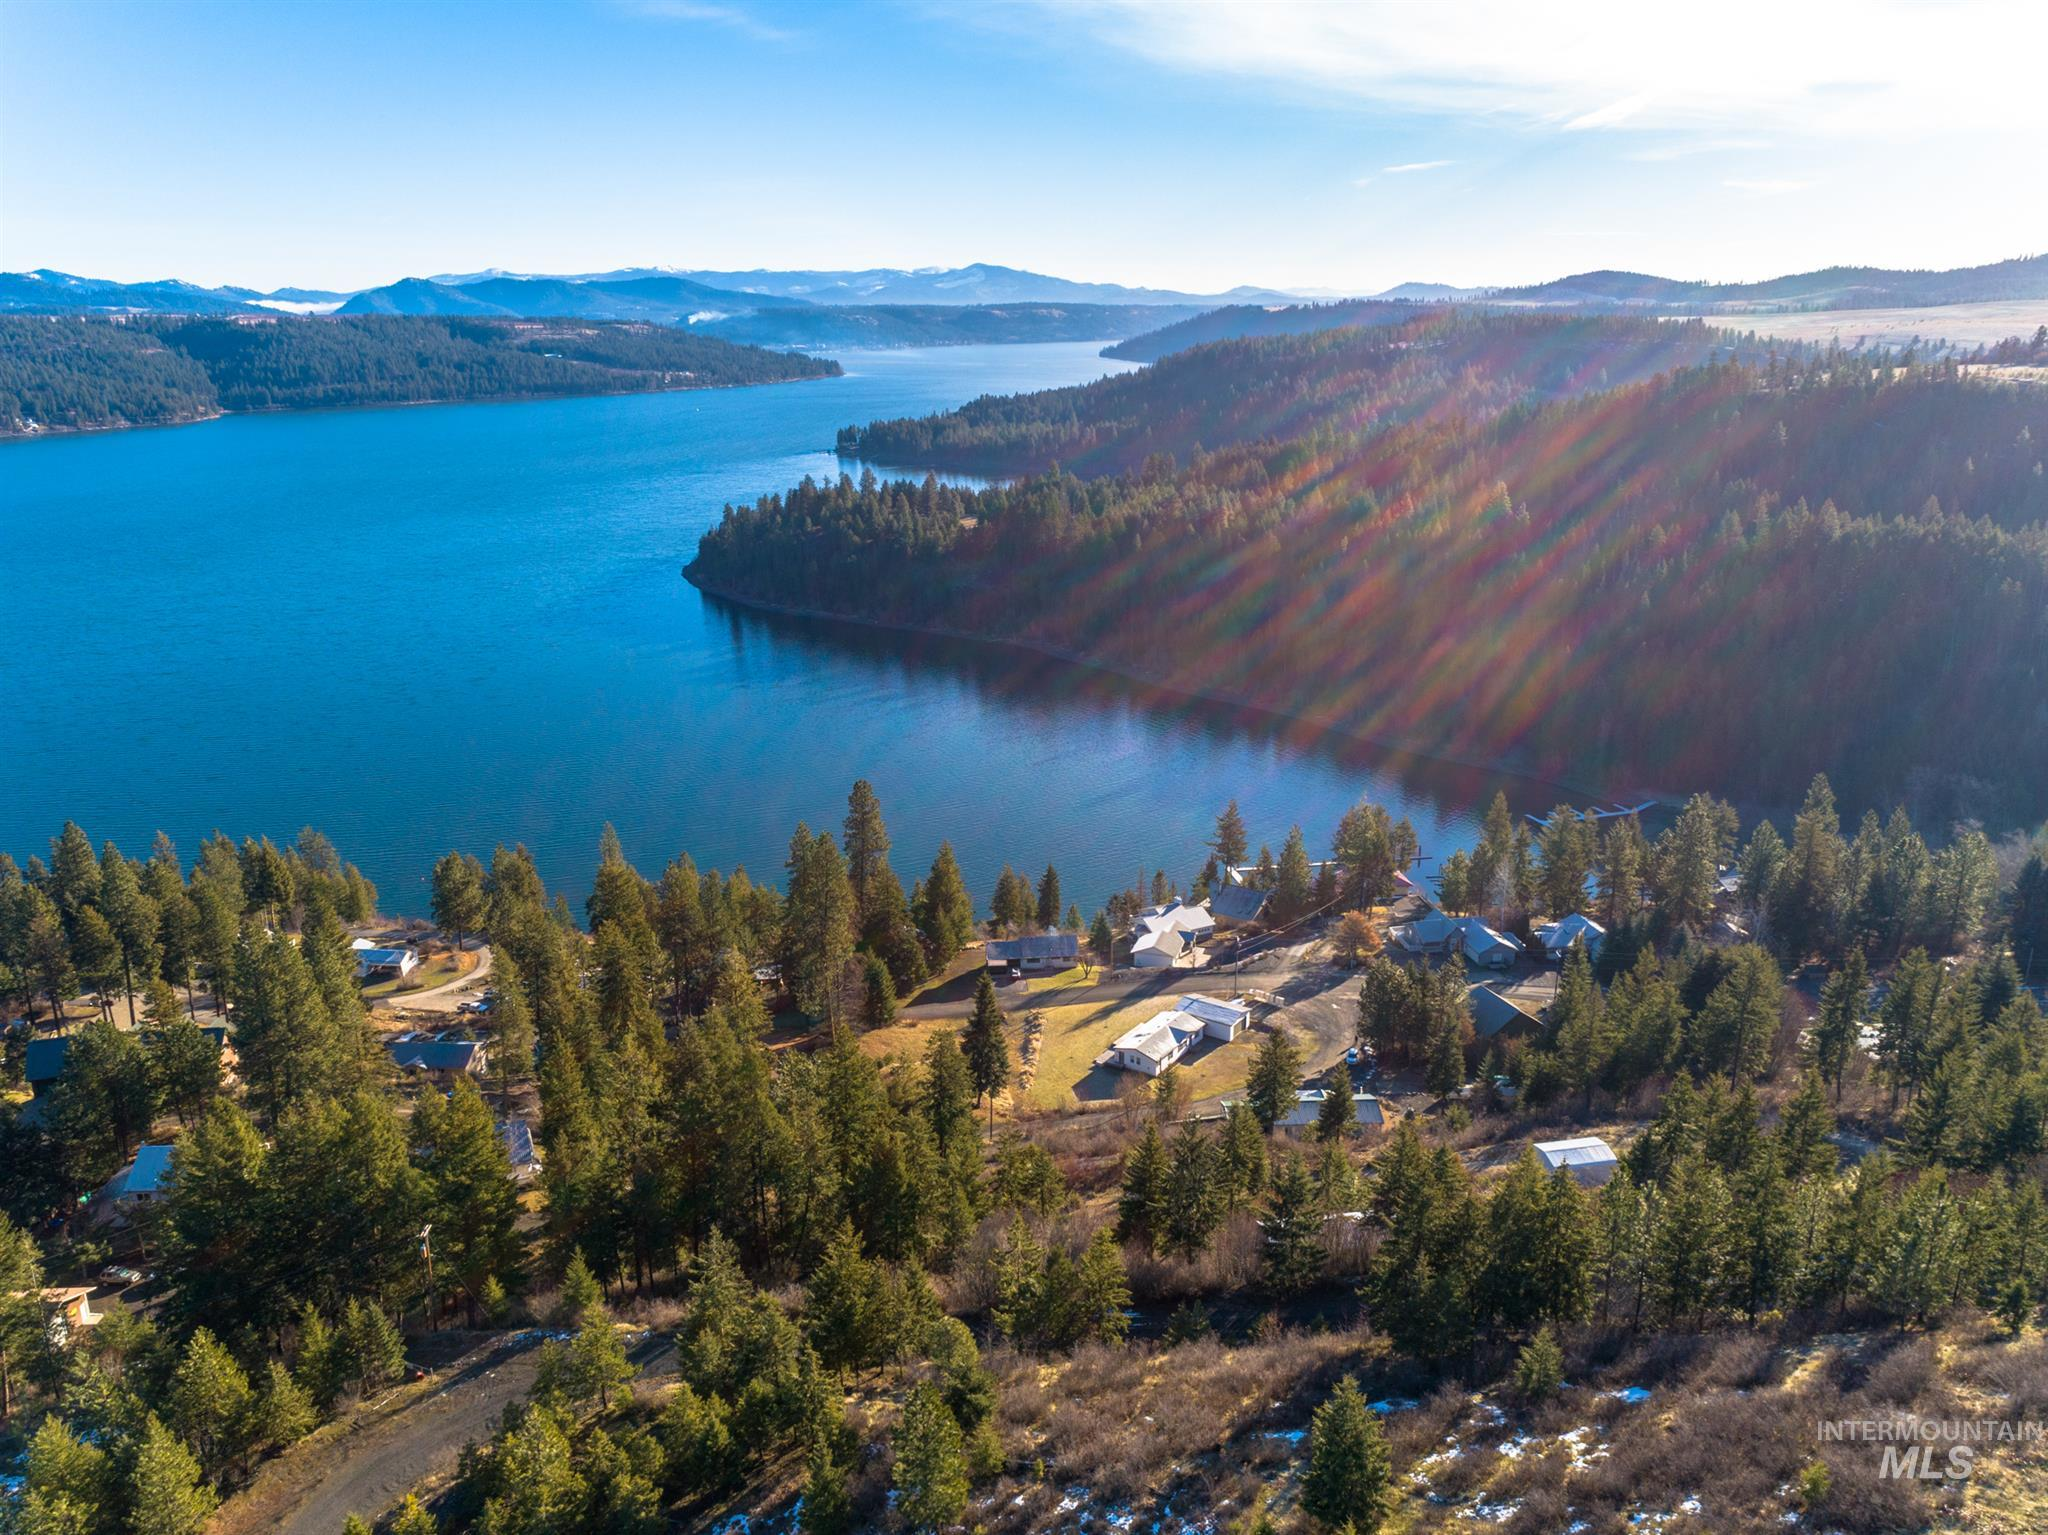 000 Monticola Ct, Worley, Idaho 83876, Land For Sale, Price $149,900, 98791000